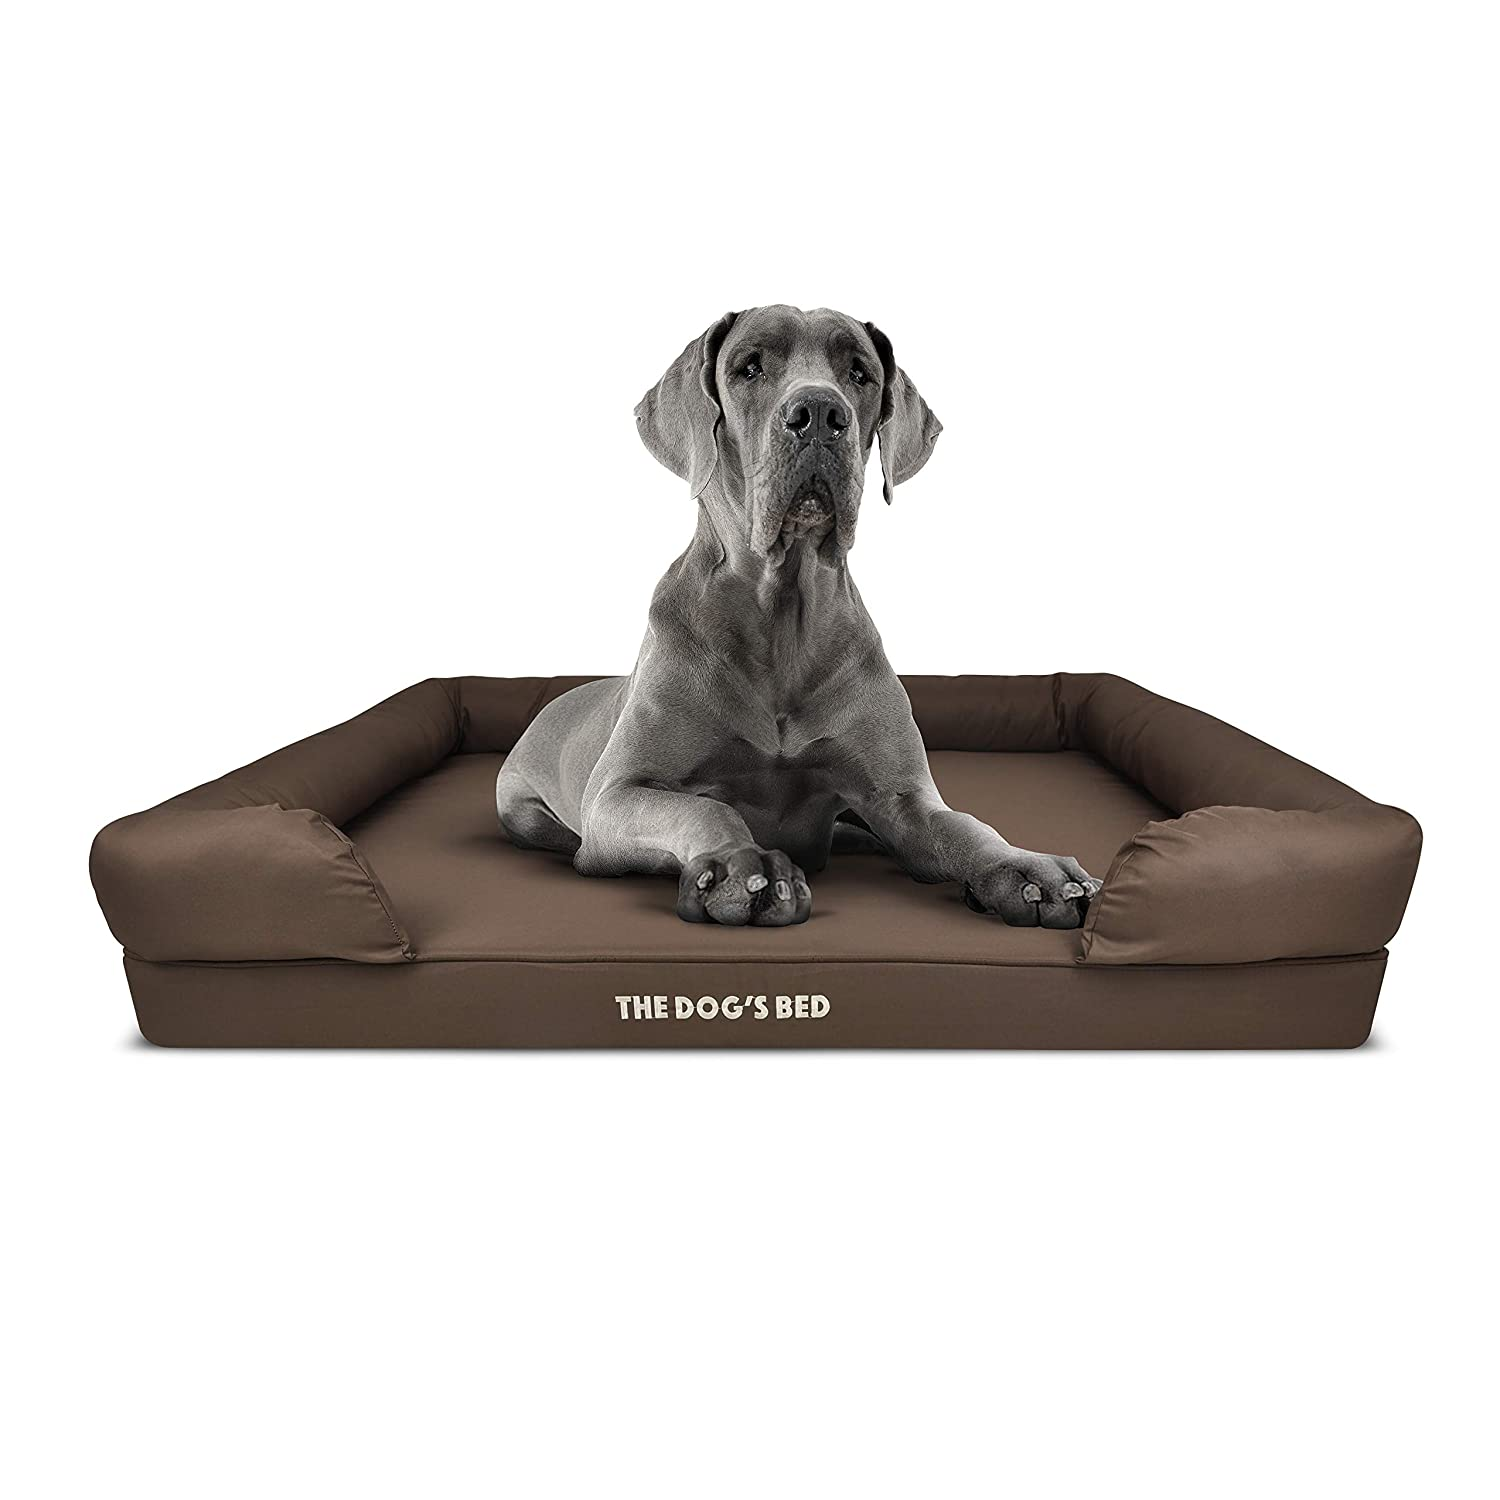 Brown XL Bed (111x86cm)The Dog's Bed, Premium Plush Orthopedic Memory Foam Waterproof Dog Beds, Eases Pet Arthritis & Hip Dysplasia Pain, Therapeutic & Supportive Dog Bed, Washable Covers